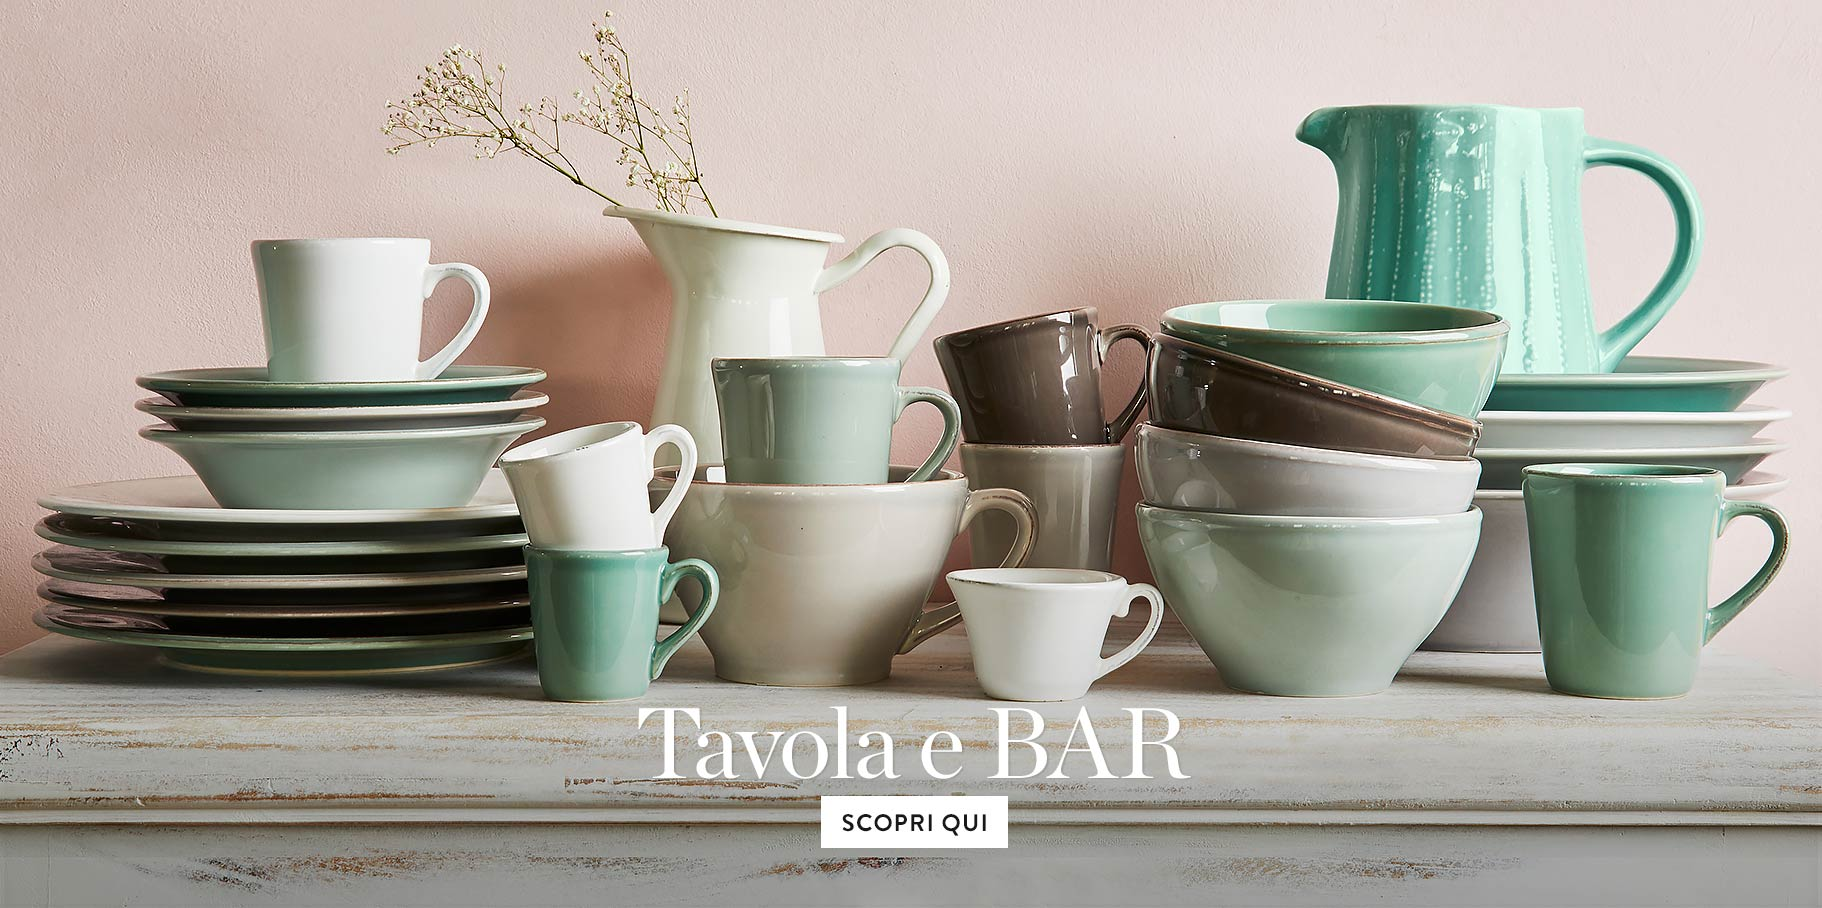 Home_-_Tavola_e_bar